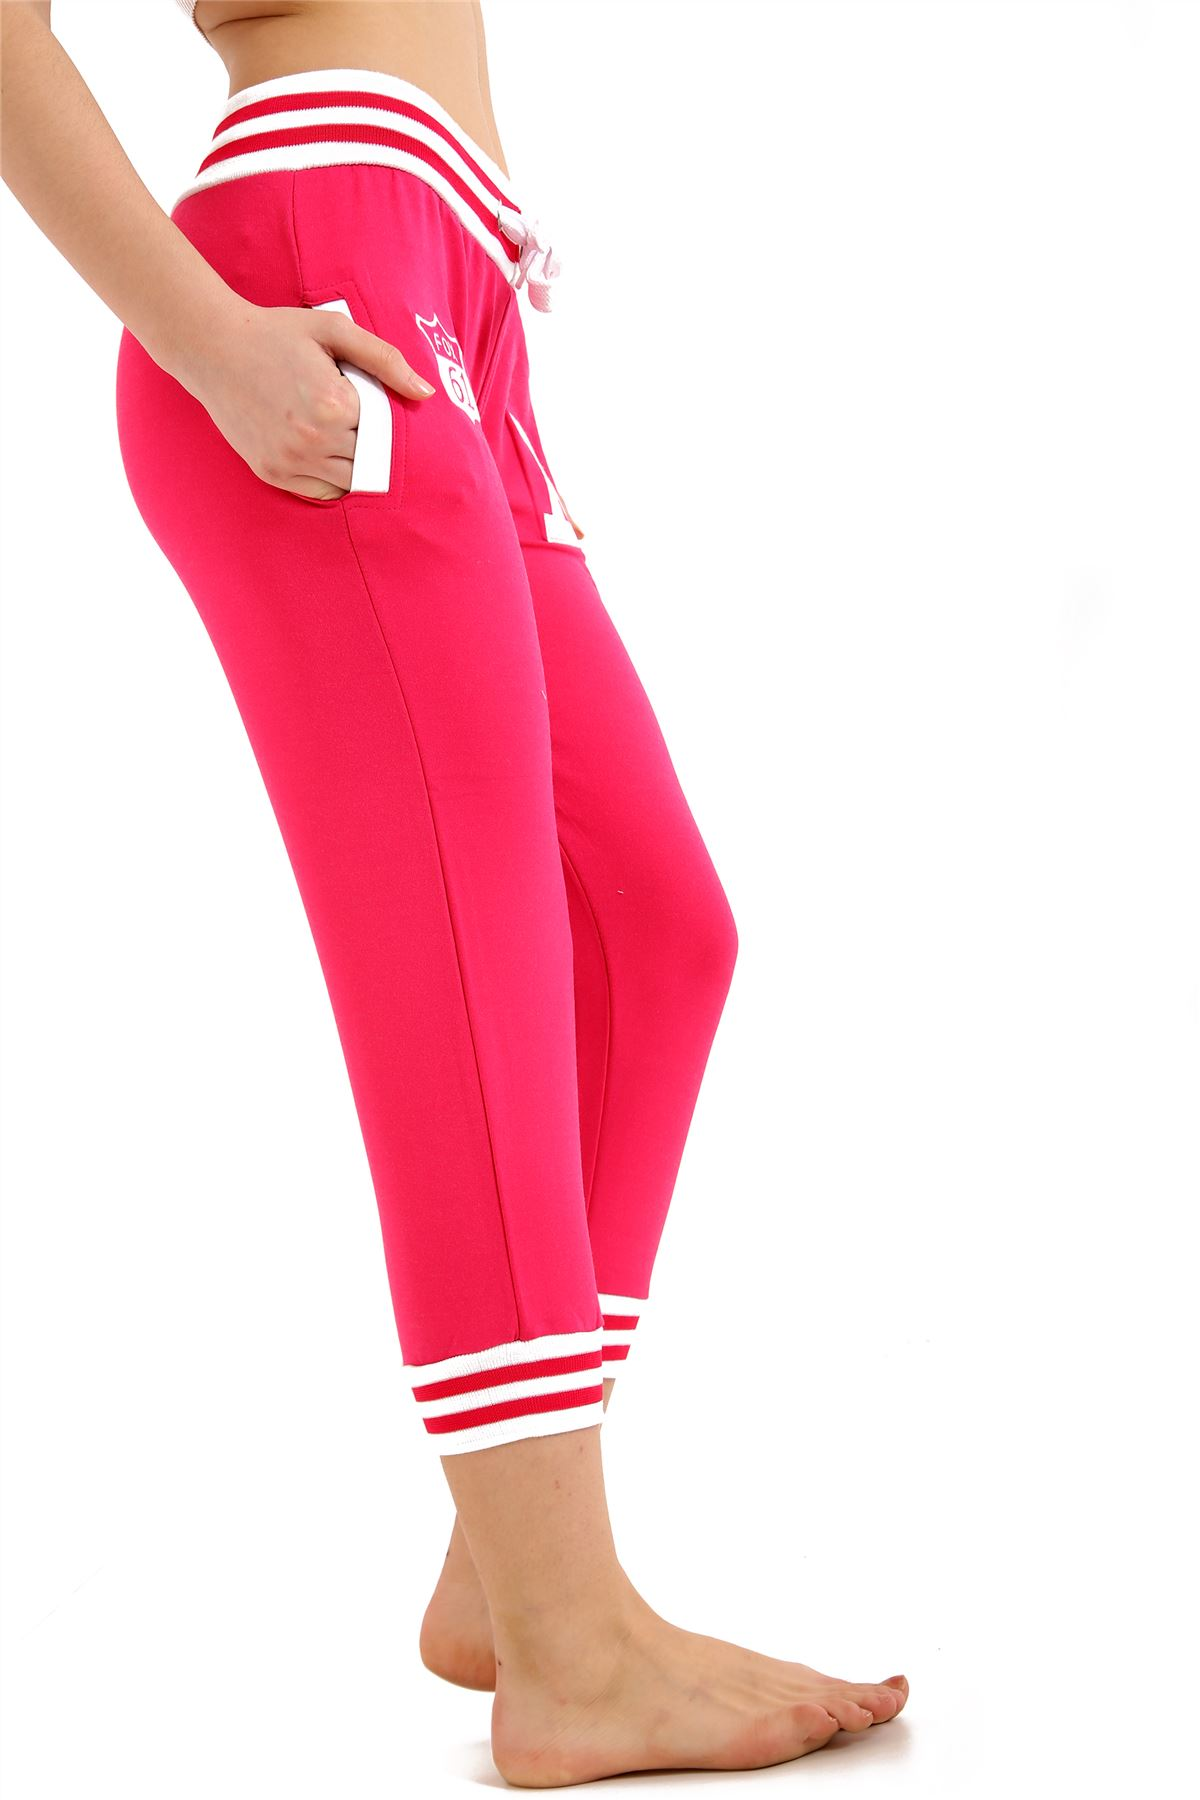 New Womens Three Quarter Contrast Sports Gym Jogging Pants Athletic Trousers